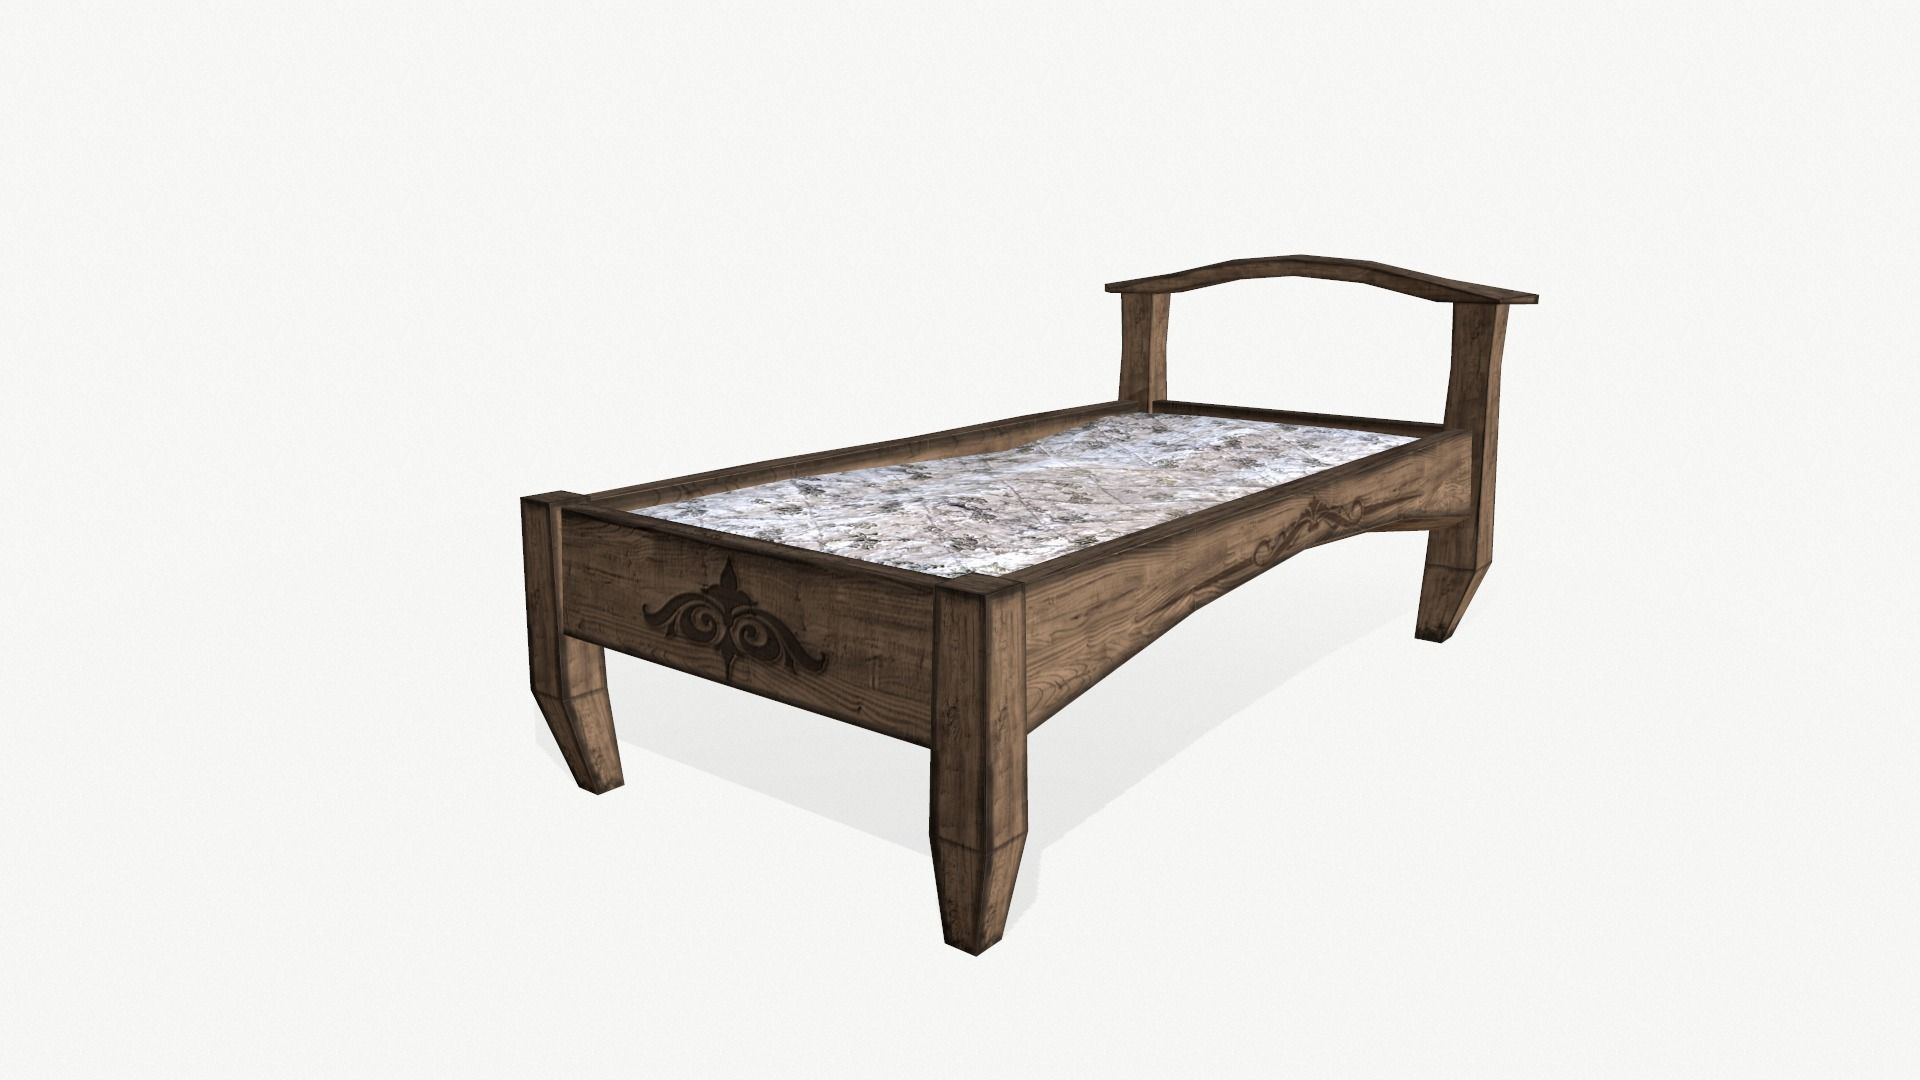 3d Model Low Poly An Old Wooden Bed Cgtrader